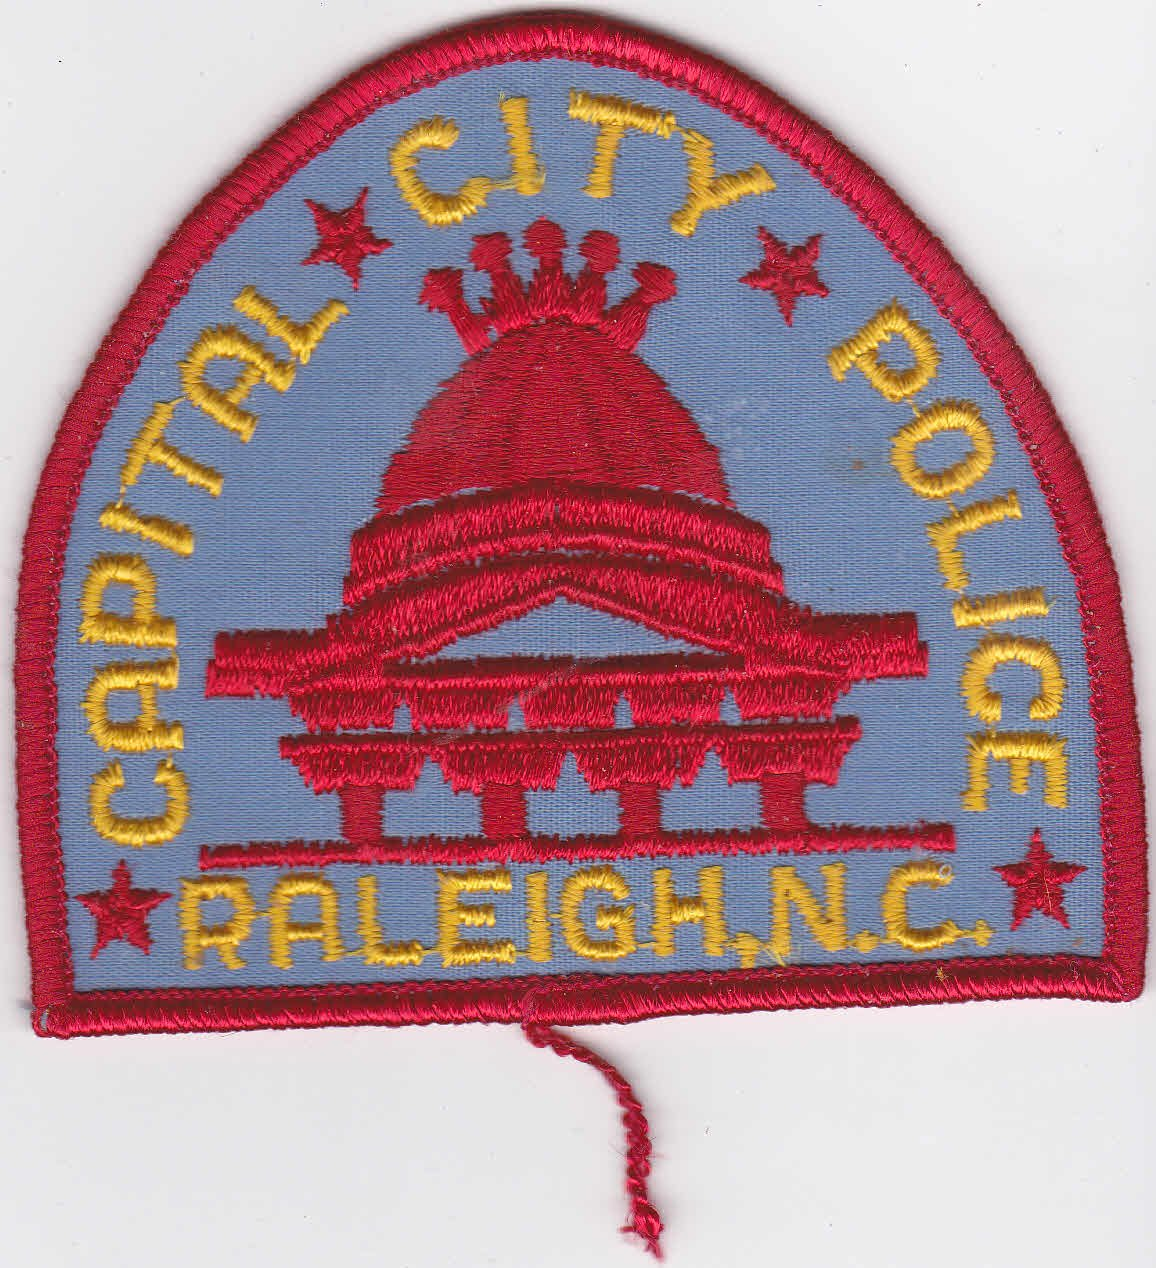 Capital City Police Raleigh NC Shoulder Patch Uniform